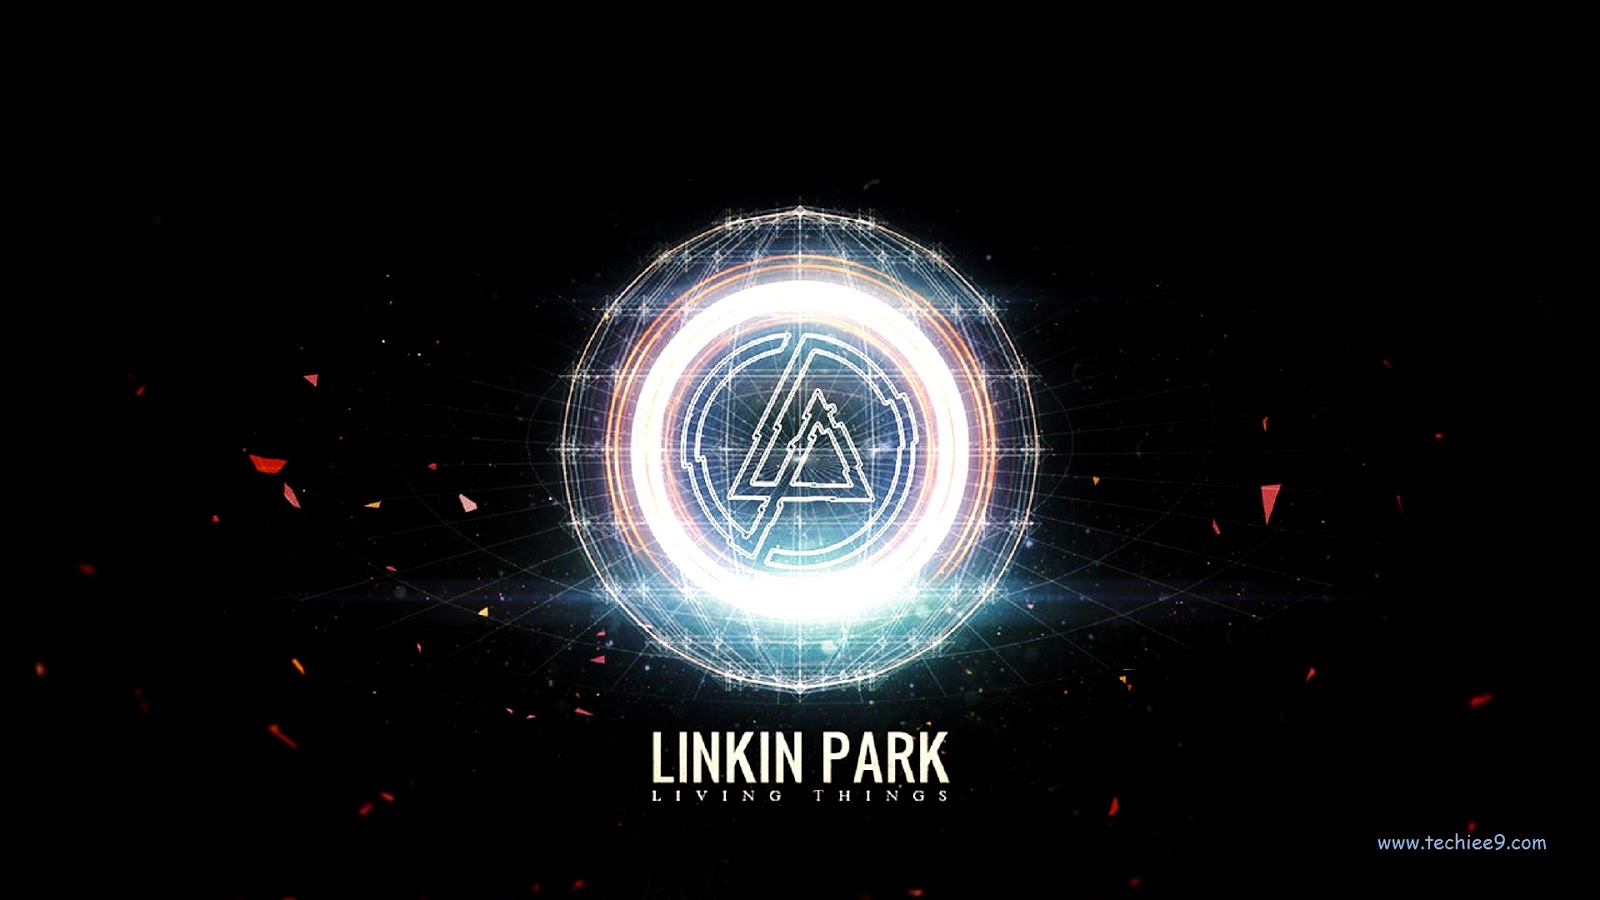 living things linkin park 2012 full album 3